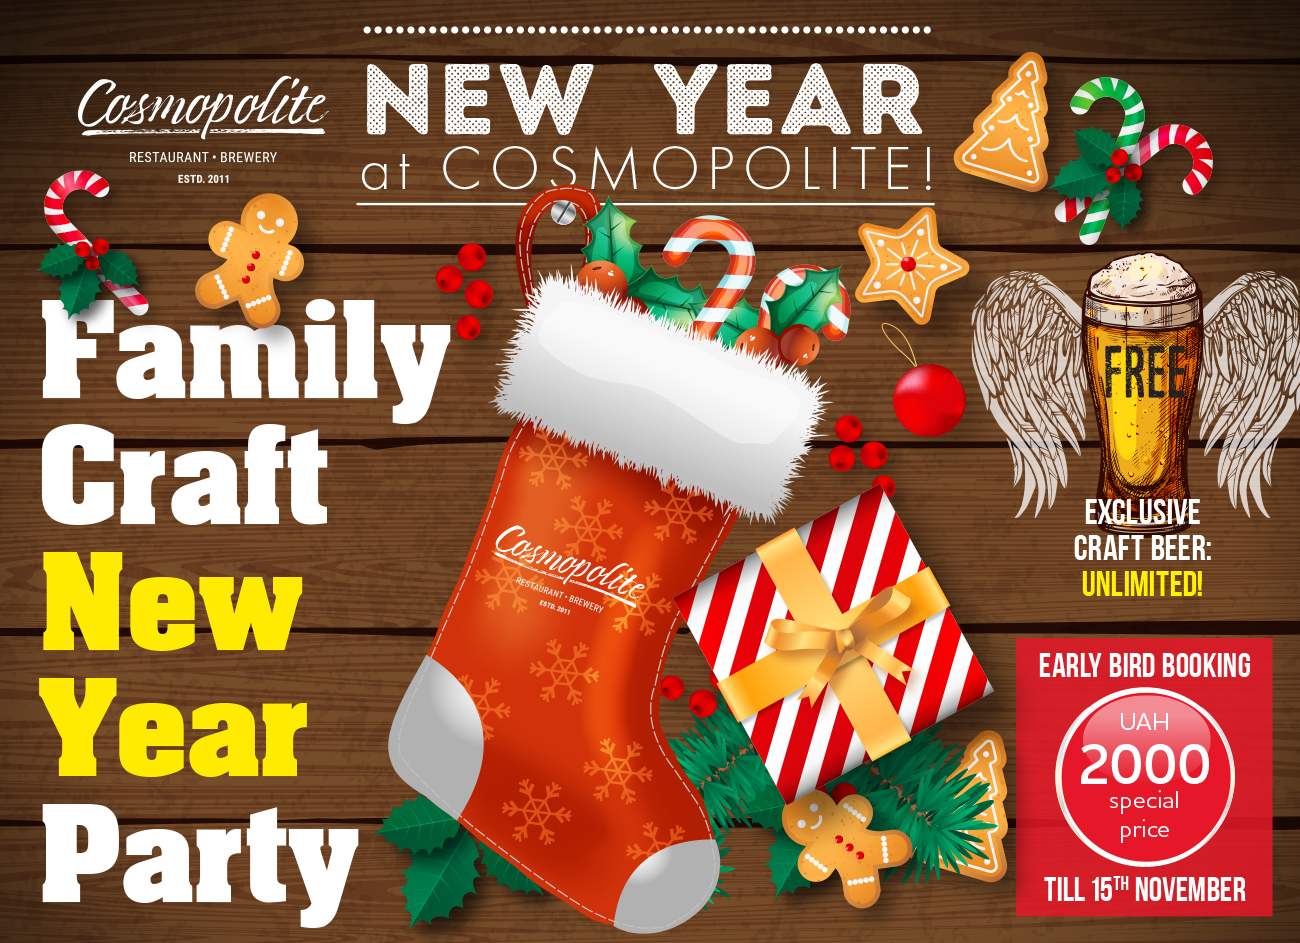 Happy New Beer Party 2020: Cosmopolite restaurant-brewery